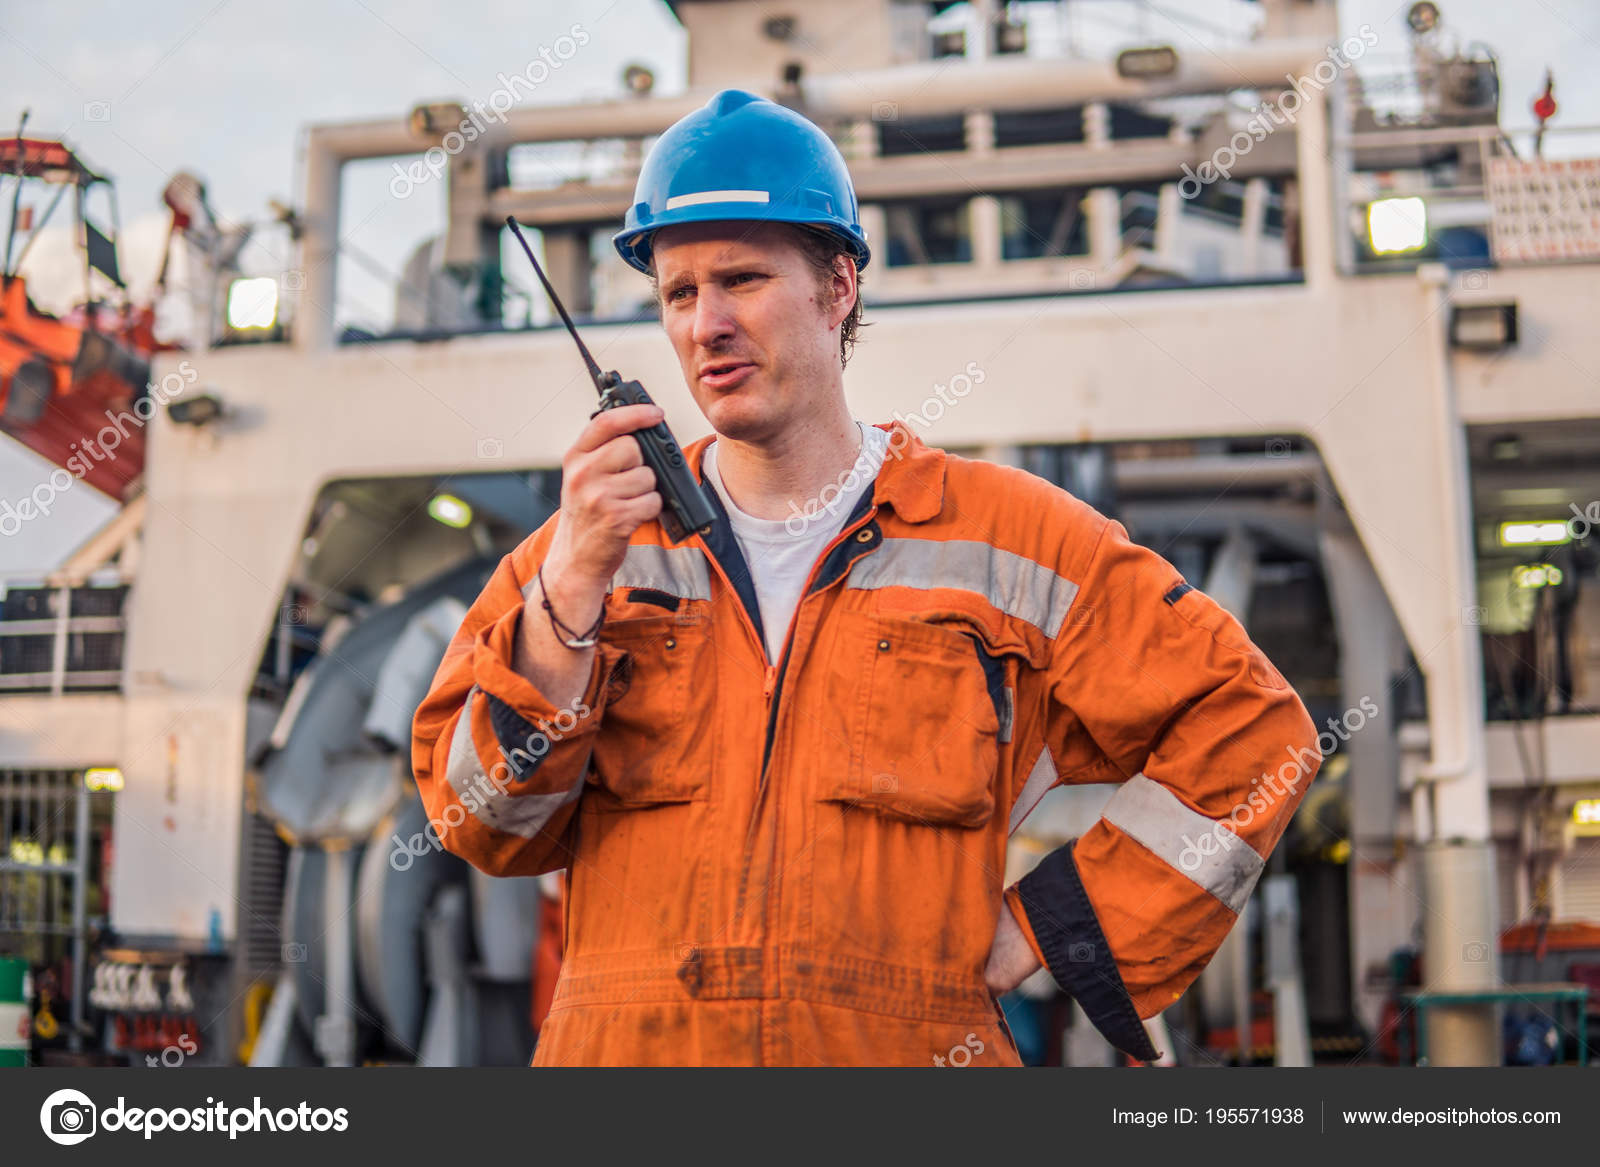 Marine Deck Officer or Chief mate on deck of ship with VHF radio